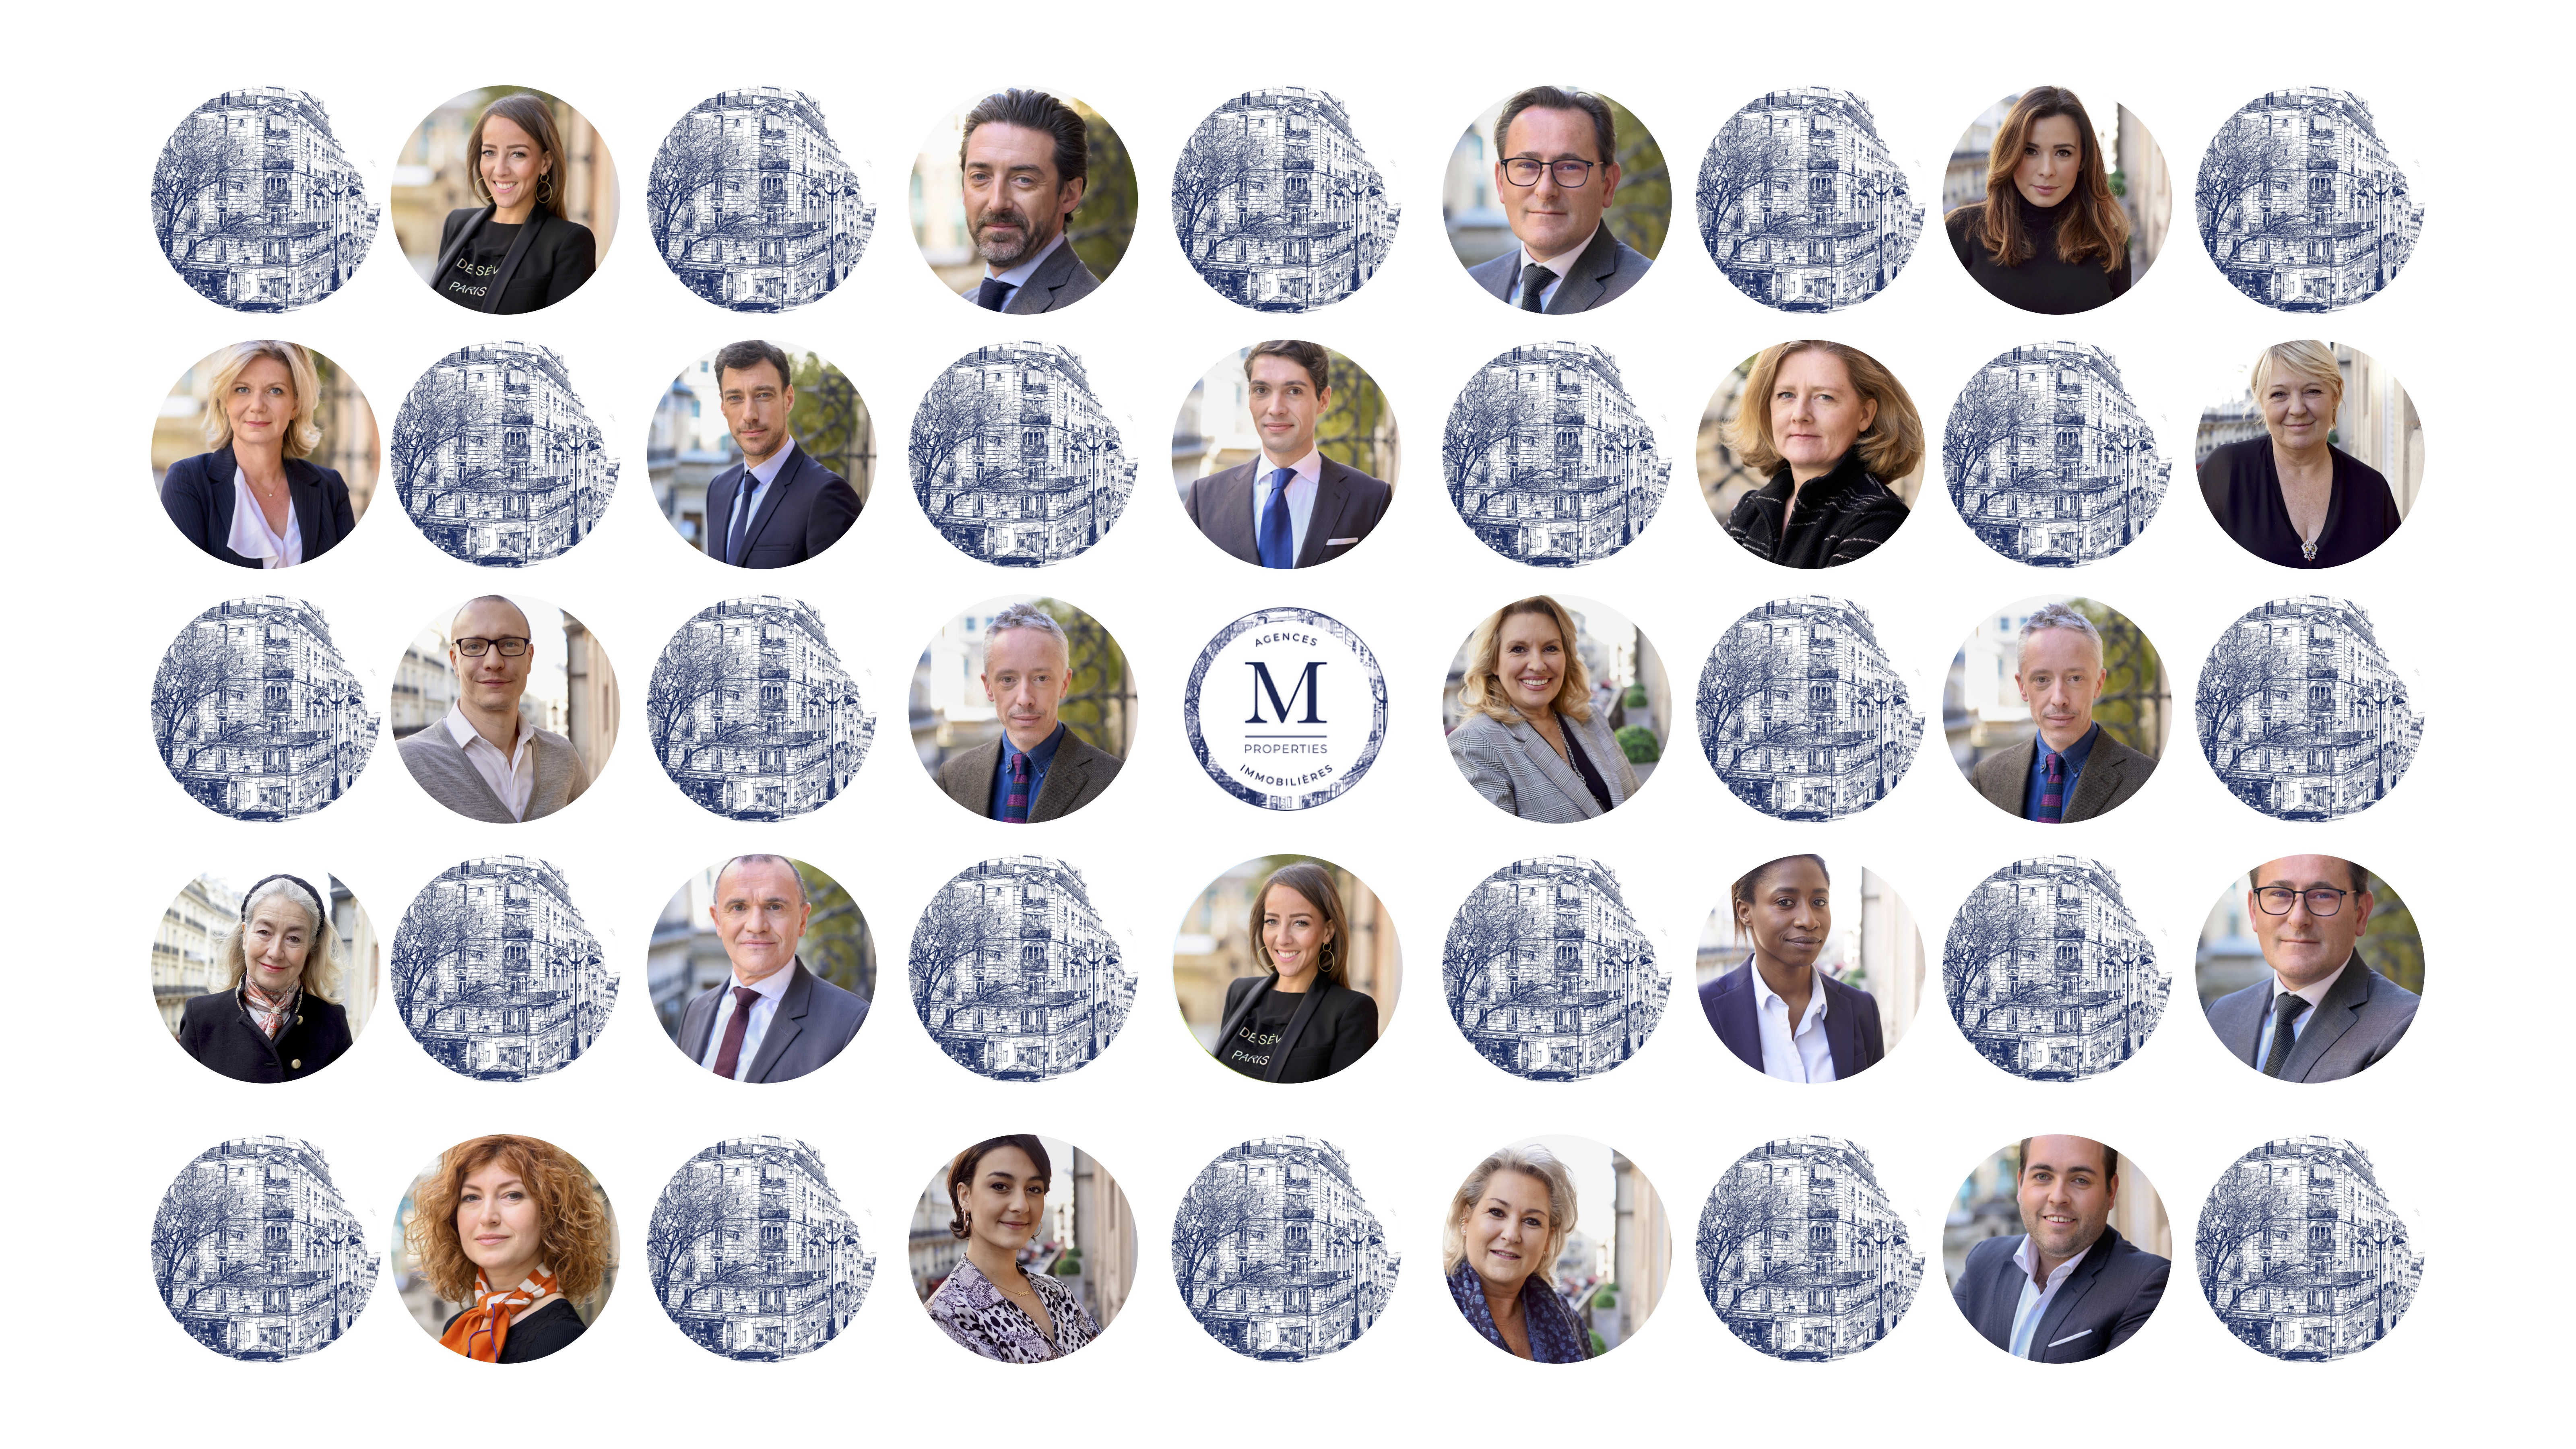 M PROPERTIES-agence rive droite